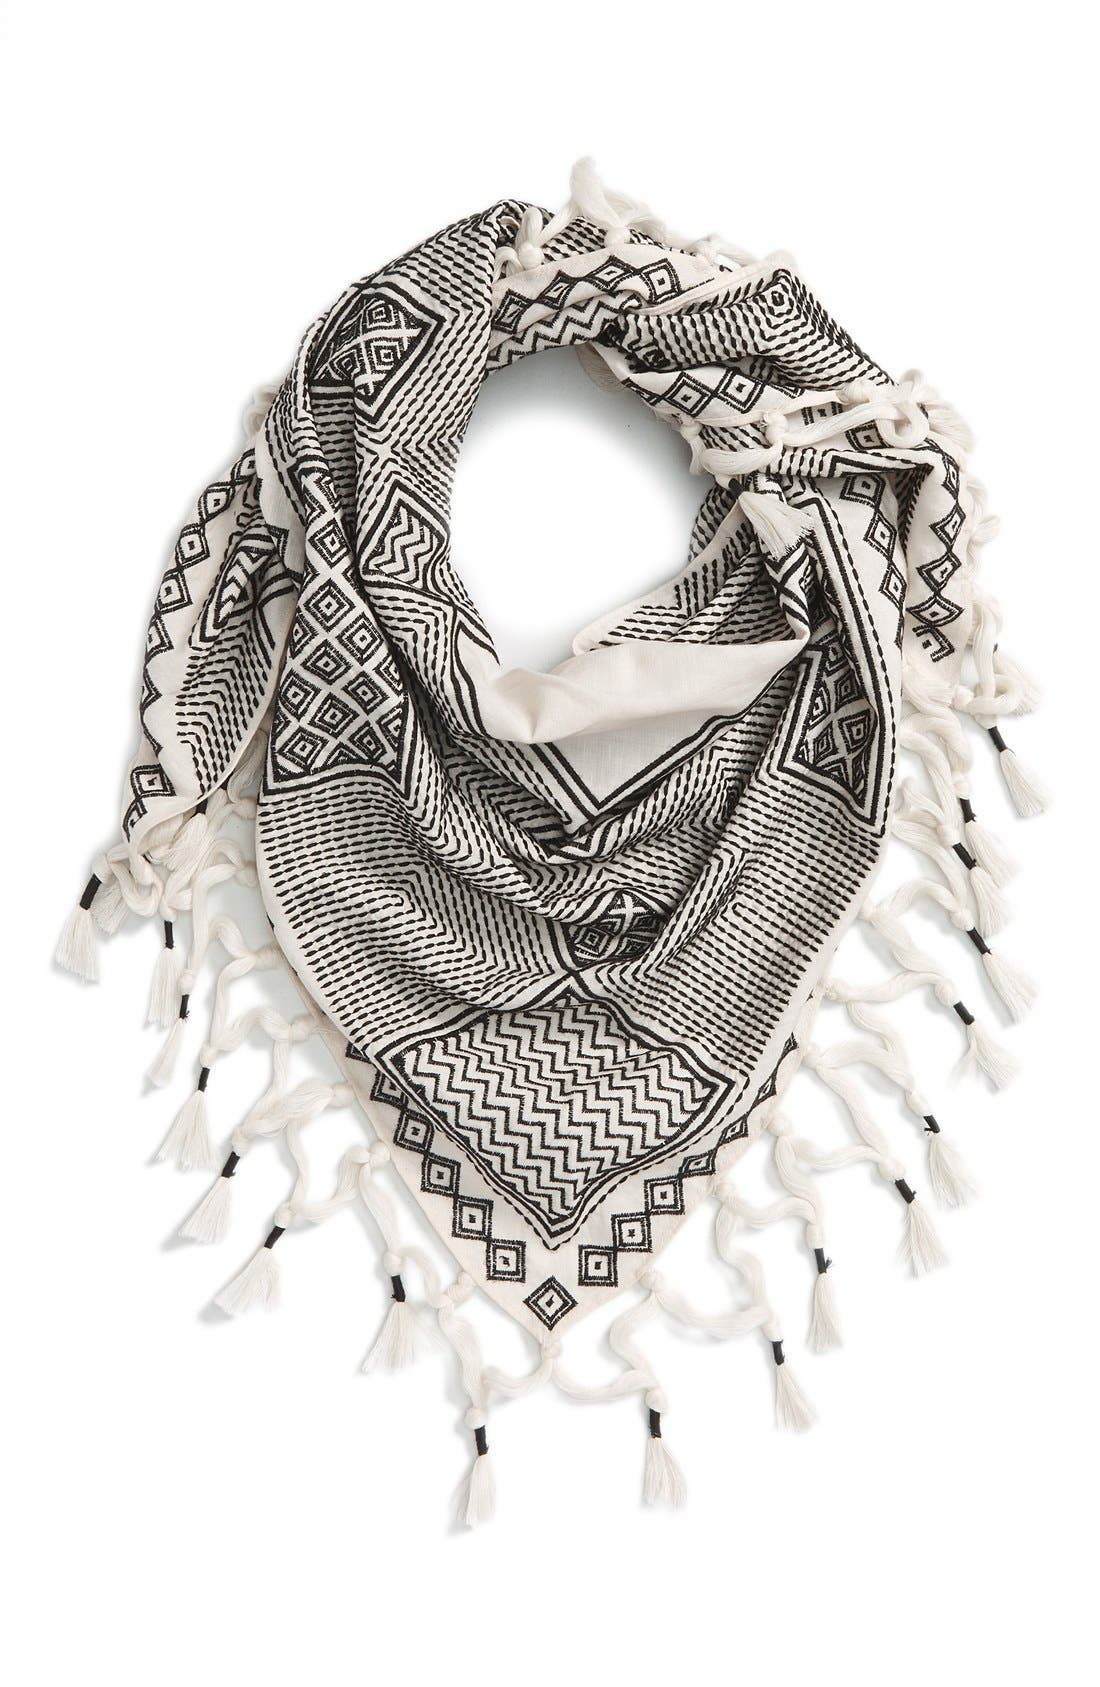 Alternate Image 1 Selected - Tory Burch 'Pottery' Embroidered Scarf